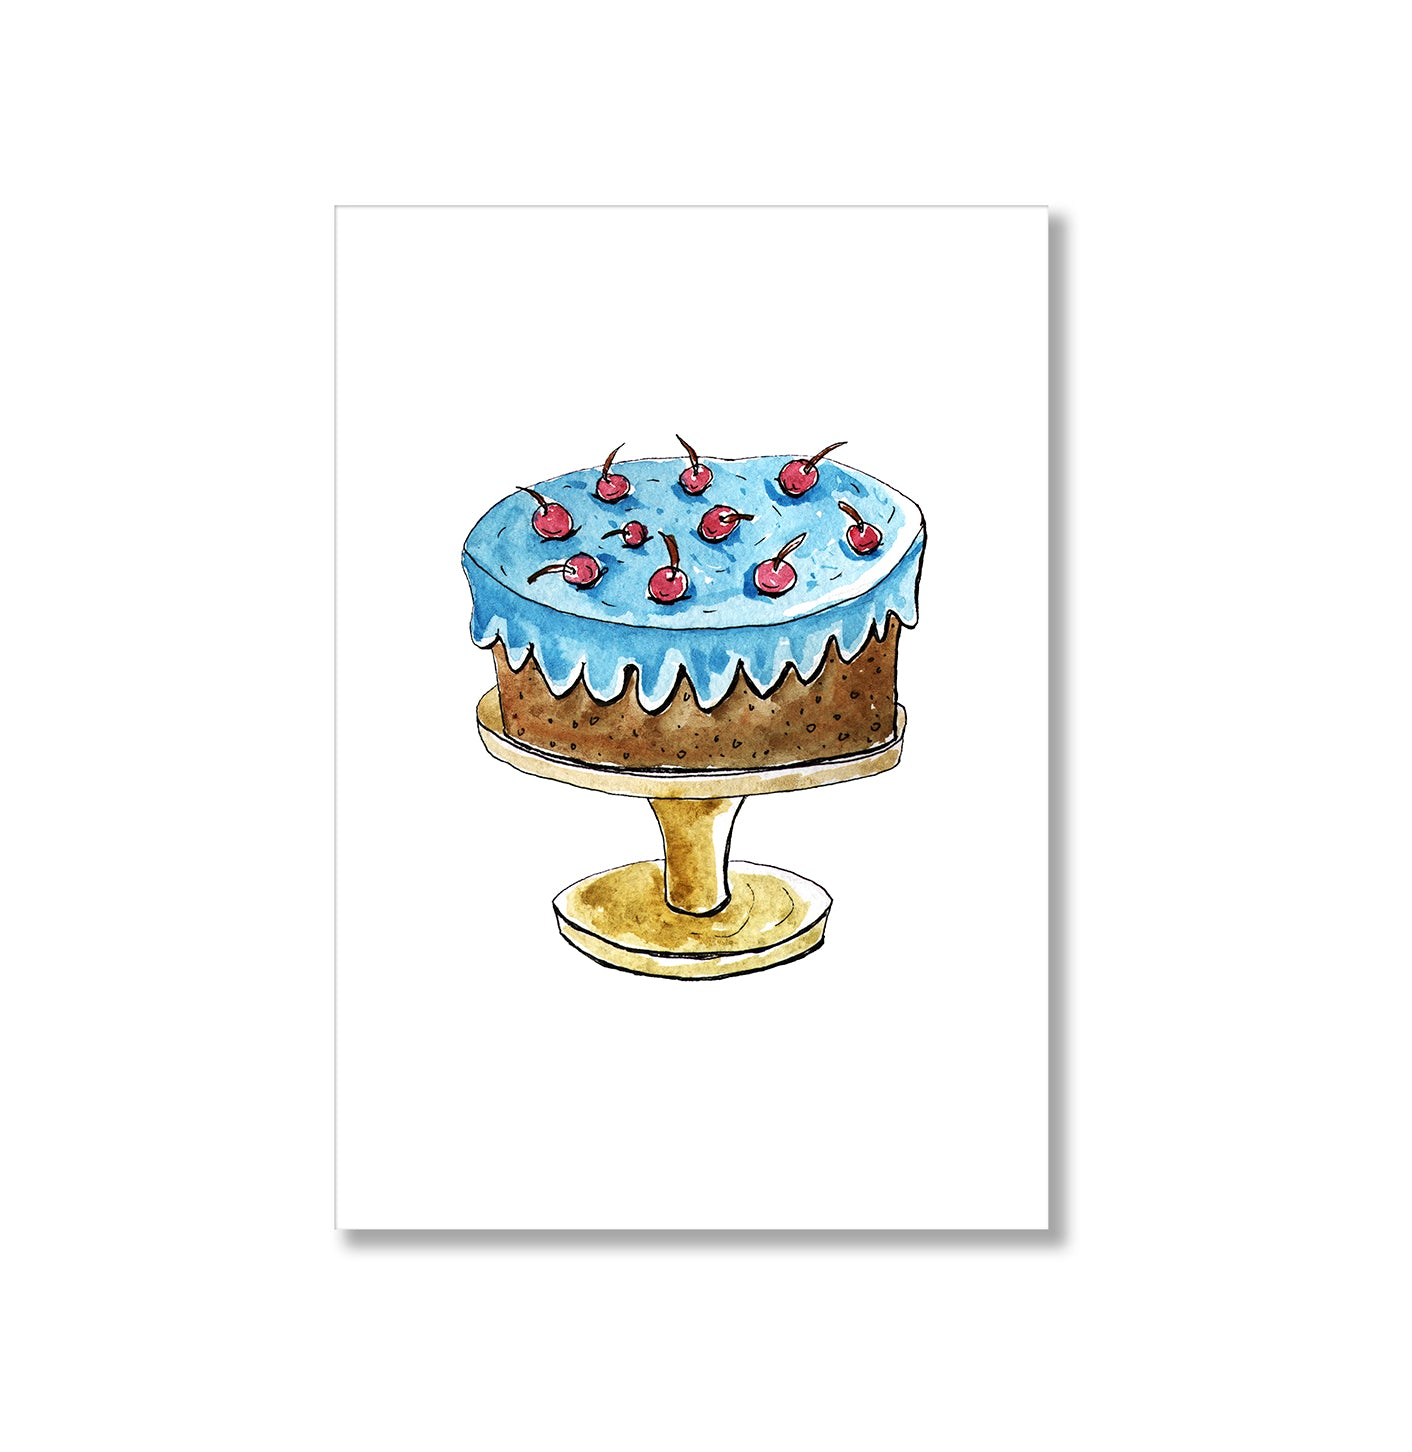 Chocolate Cake With Cherries Art Poster Print-Print-Mode Prints